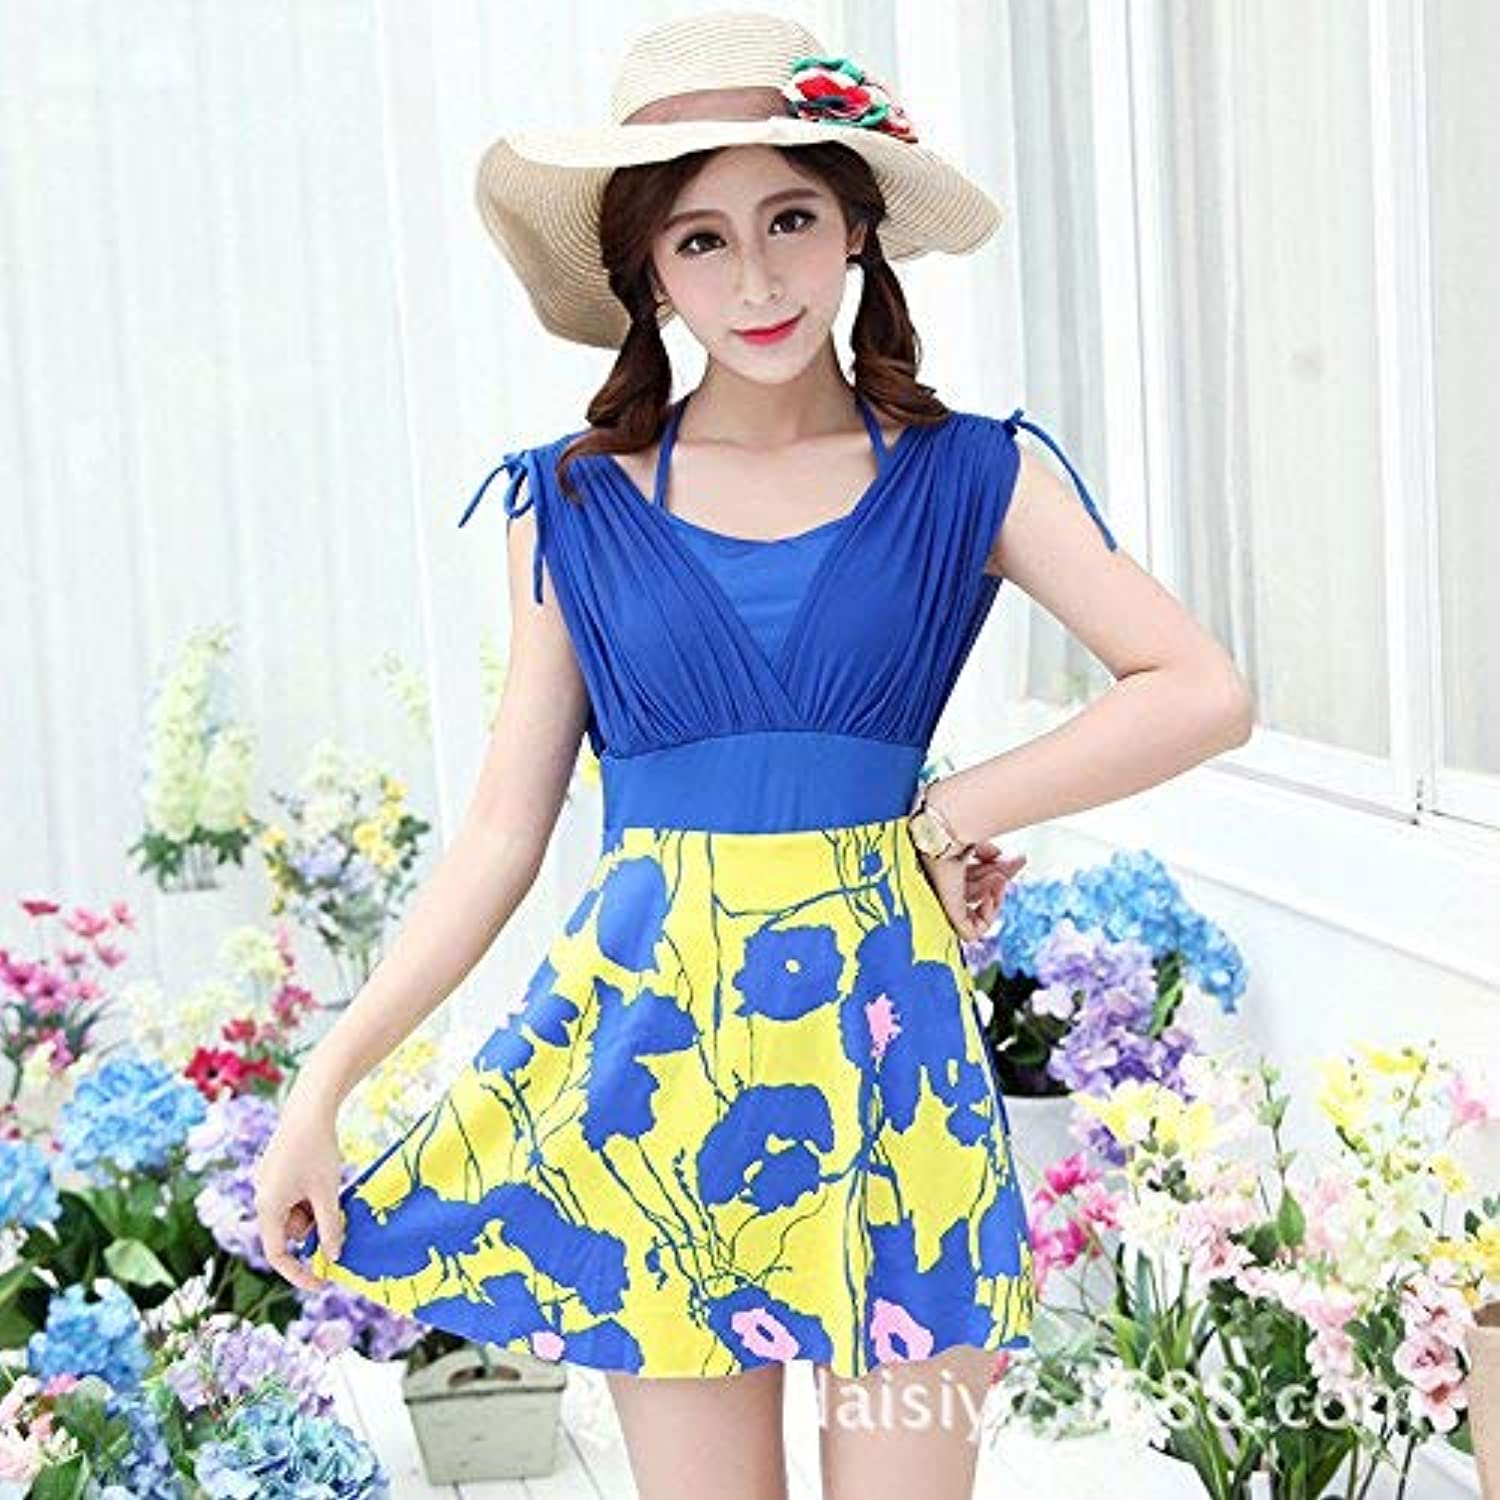 Jianheads Split Skirt Style Bathing Suit Sexy Large Flower Sau Video Thin, Cup bluee + Yellow,Xxl